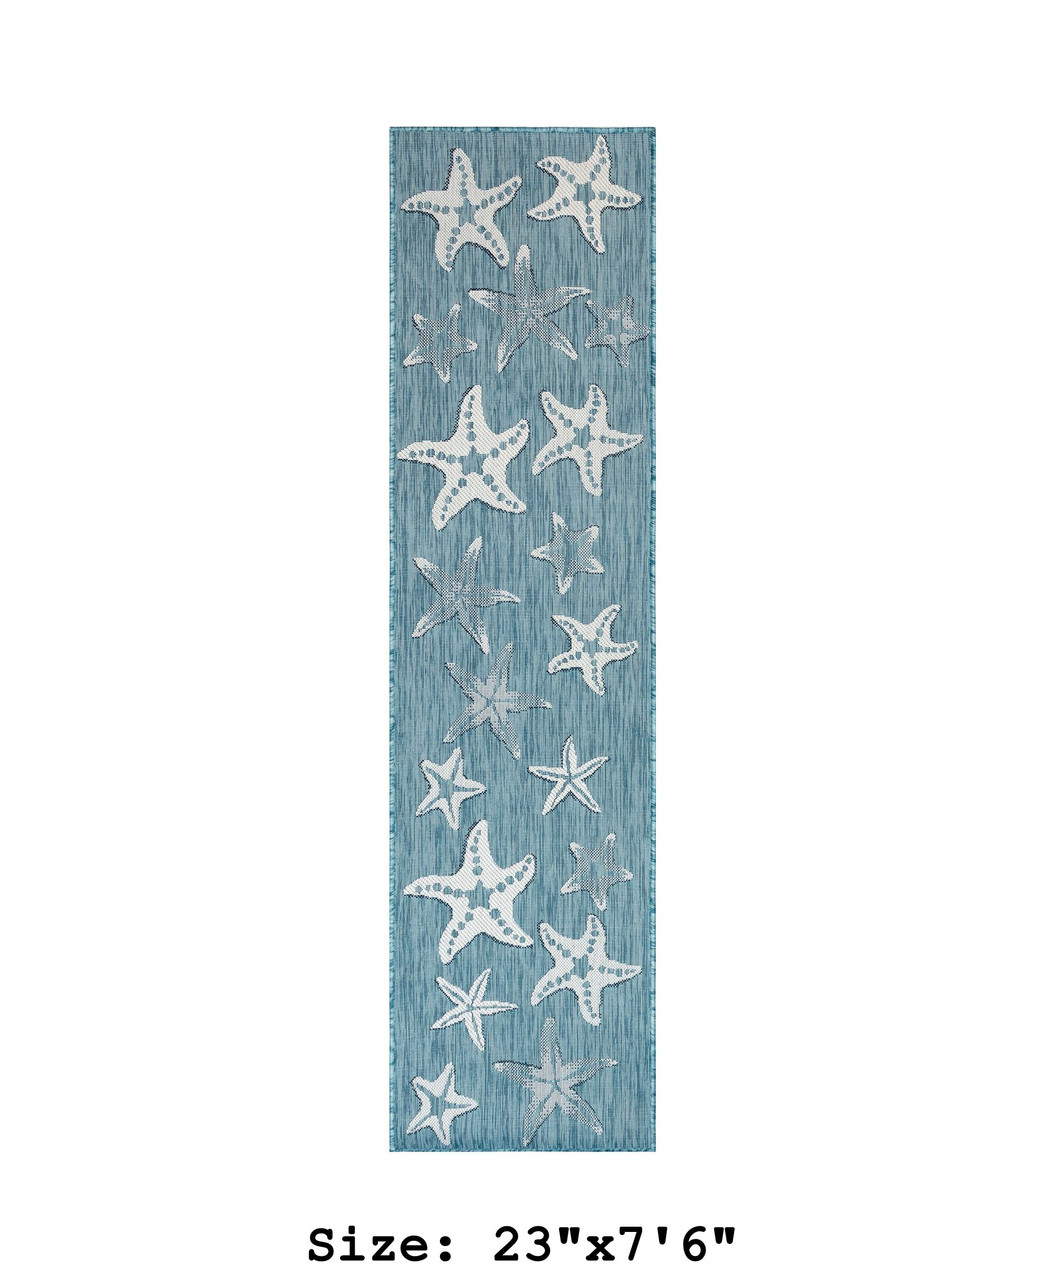 Aqua Carmel Starfish Indoor/Outdoor Rug - Runner